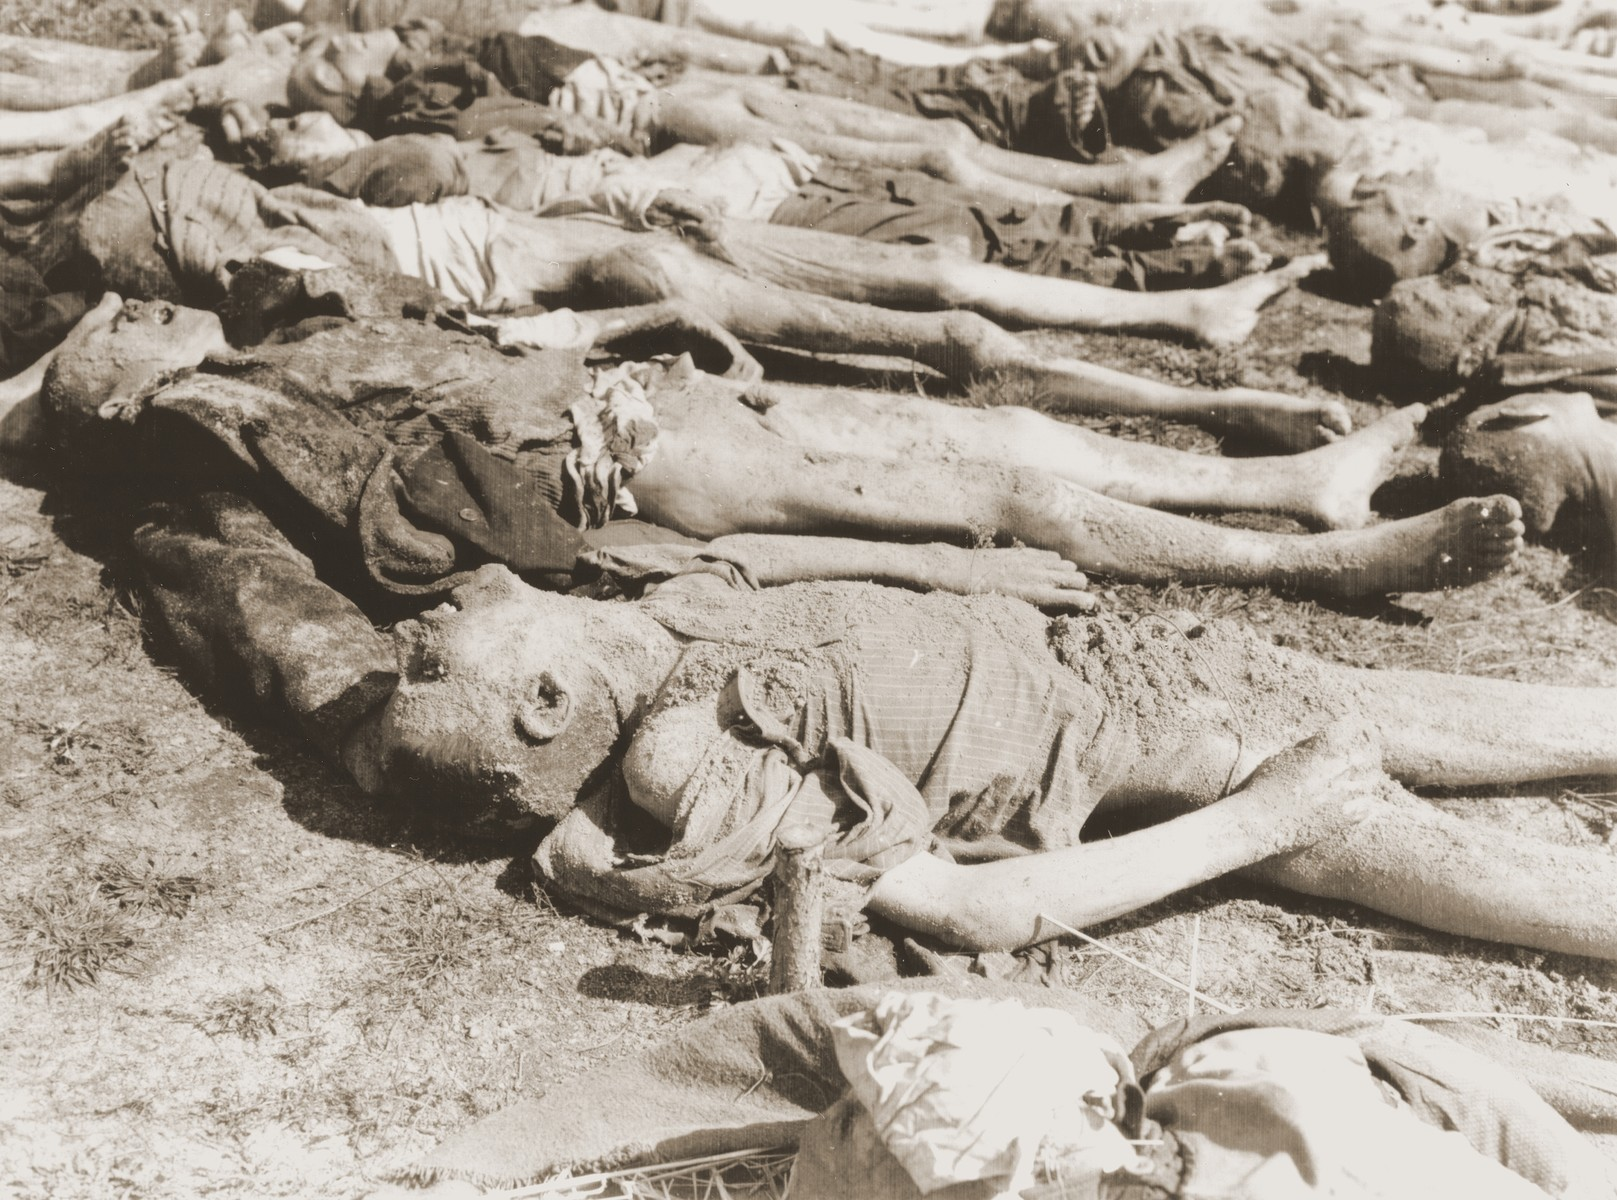 "The bodies of 140 Hungarian, Russian, and Polish Jews exhumed from a mass grave near the town of Schwarzenfeld are laid out on the ground.    The victims died while on an evacuation transport from the Flossenbuerg concentration camp.  The original Signal Corps caption reads, ""THIRD U.S. ARMY DISCOVERS NAZI ATROCITY.  When troops of the 26th Infantry Division, Third U.S. Army, captured Schwarzenfeld, Germany, April 22, 1945, another story of Nazi murder and atrocity was revealed.  The Americans discovered that many hundreds of helpless persons, including Allied prisoners-of-war and Polish Jewish slave laborers, had been shot in cold blood by Nazi SS troops, and their bodies thrown into a mass grave.  The executions took place on the day before the American forces captured the town.  After making official record of the circumstances, U.S. Military Government officers ordered local German civilians to exhume the bodies and provide coffins and a civilized burial for the victims.  Schwarzenfeld is 47 miles east of Nuremburg and 28 miles west of the Czechoslovakian border.  BIPPA                                                        EA 64392  THIS PHOTO SHOWS:  This closeup of a group of the victims shows that some of the bodies are mere skin and bones, the result of prolonged under-nourishment at  the hands of the Nazis.  U.S. Signal Corps Photo ETO-HQ-45-34028. SERVICED BY LONDON OWI TO LIST B CERTIFIED AS PASSED BY SHAEF CENSOR"